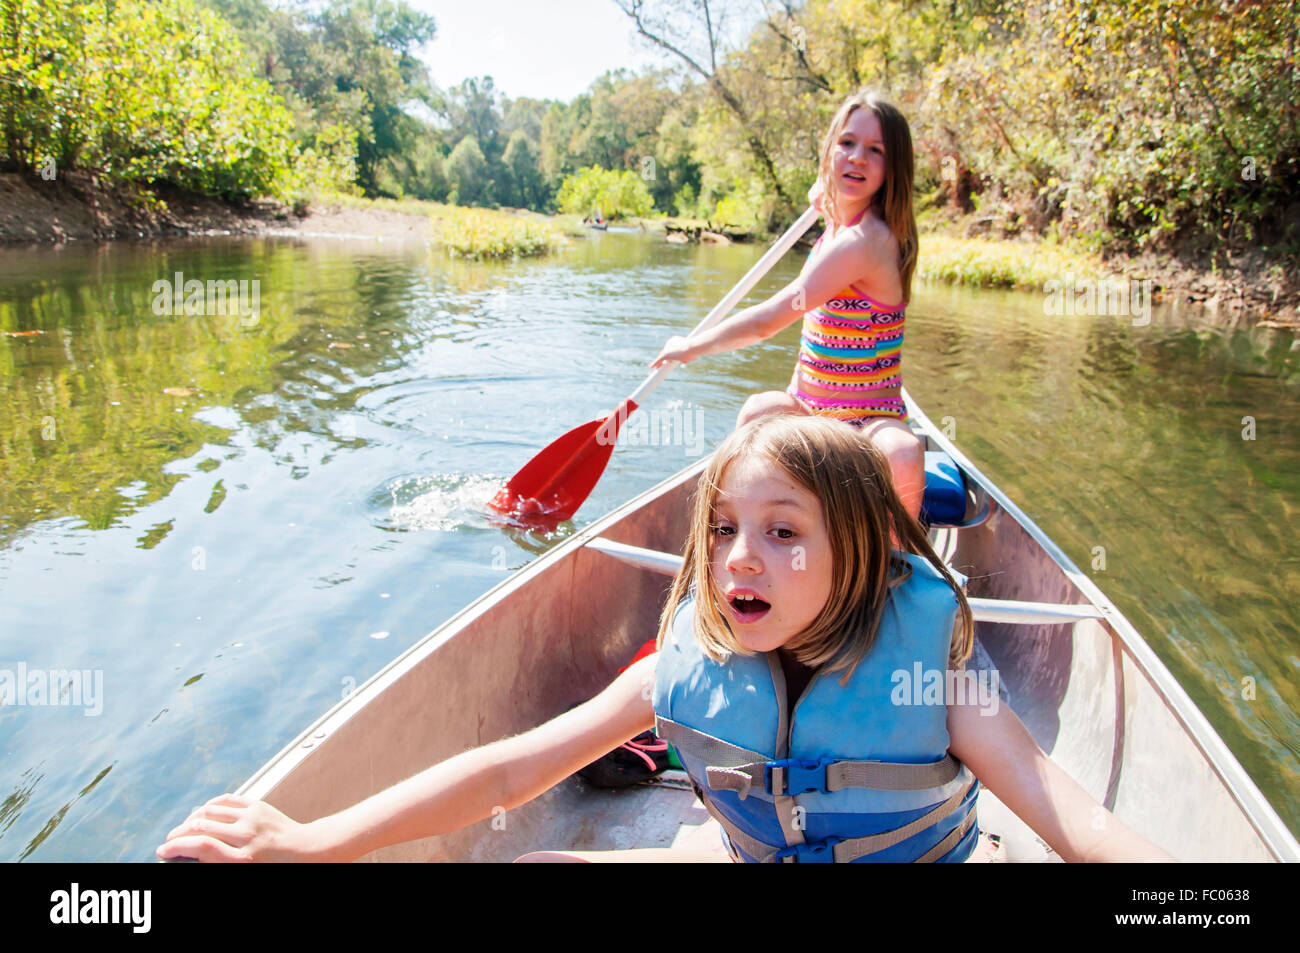 girls rowing canoe down river - Stock Image